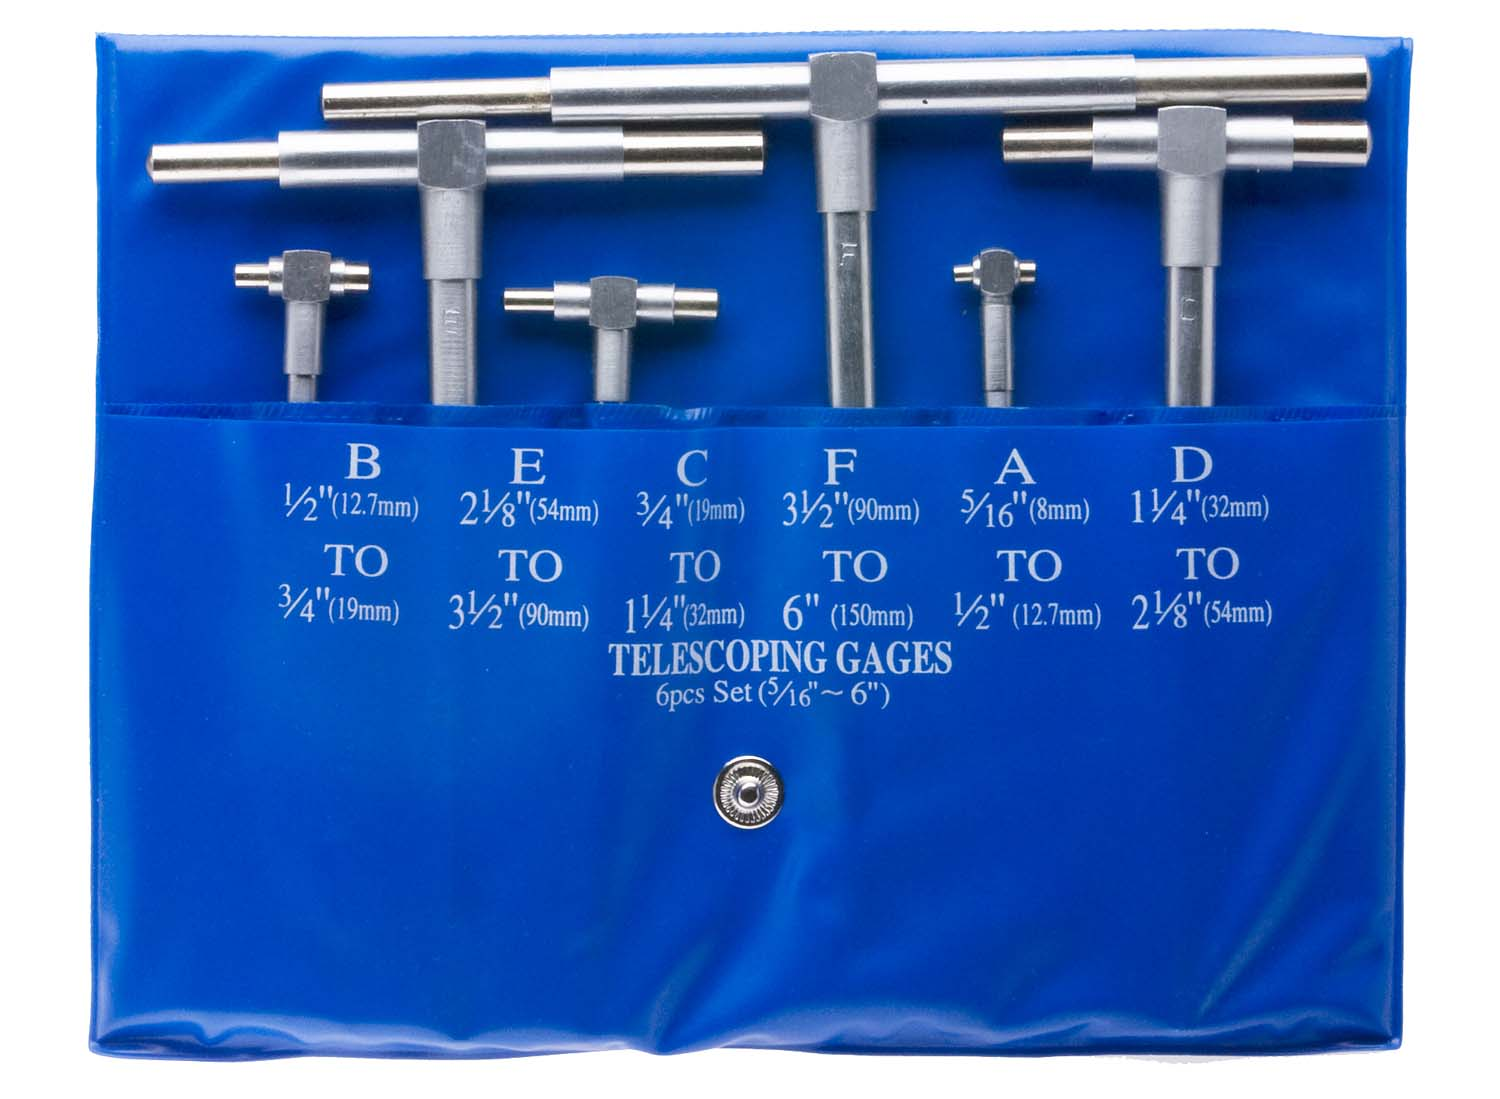 General S98-6 Telescoping Gage Set, 5/16 - 6""